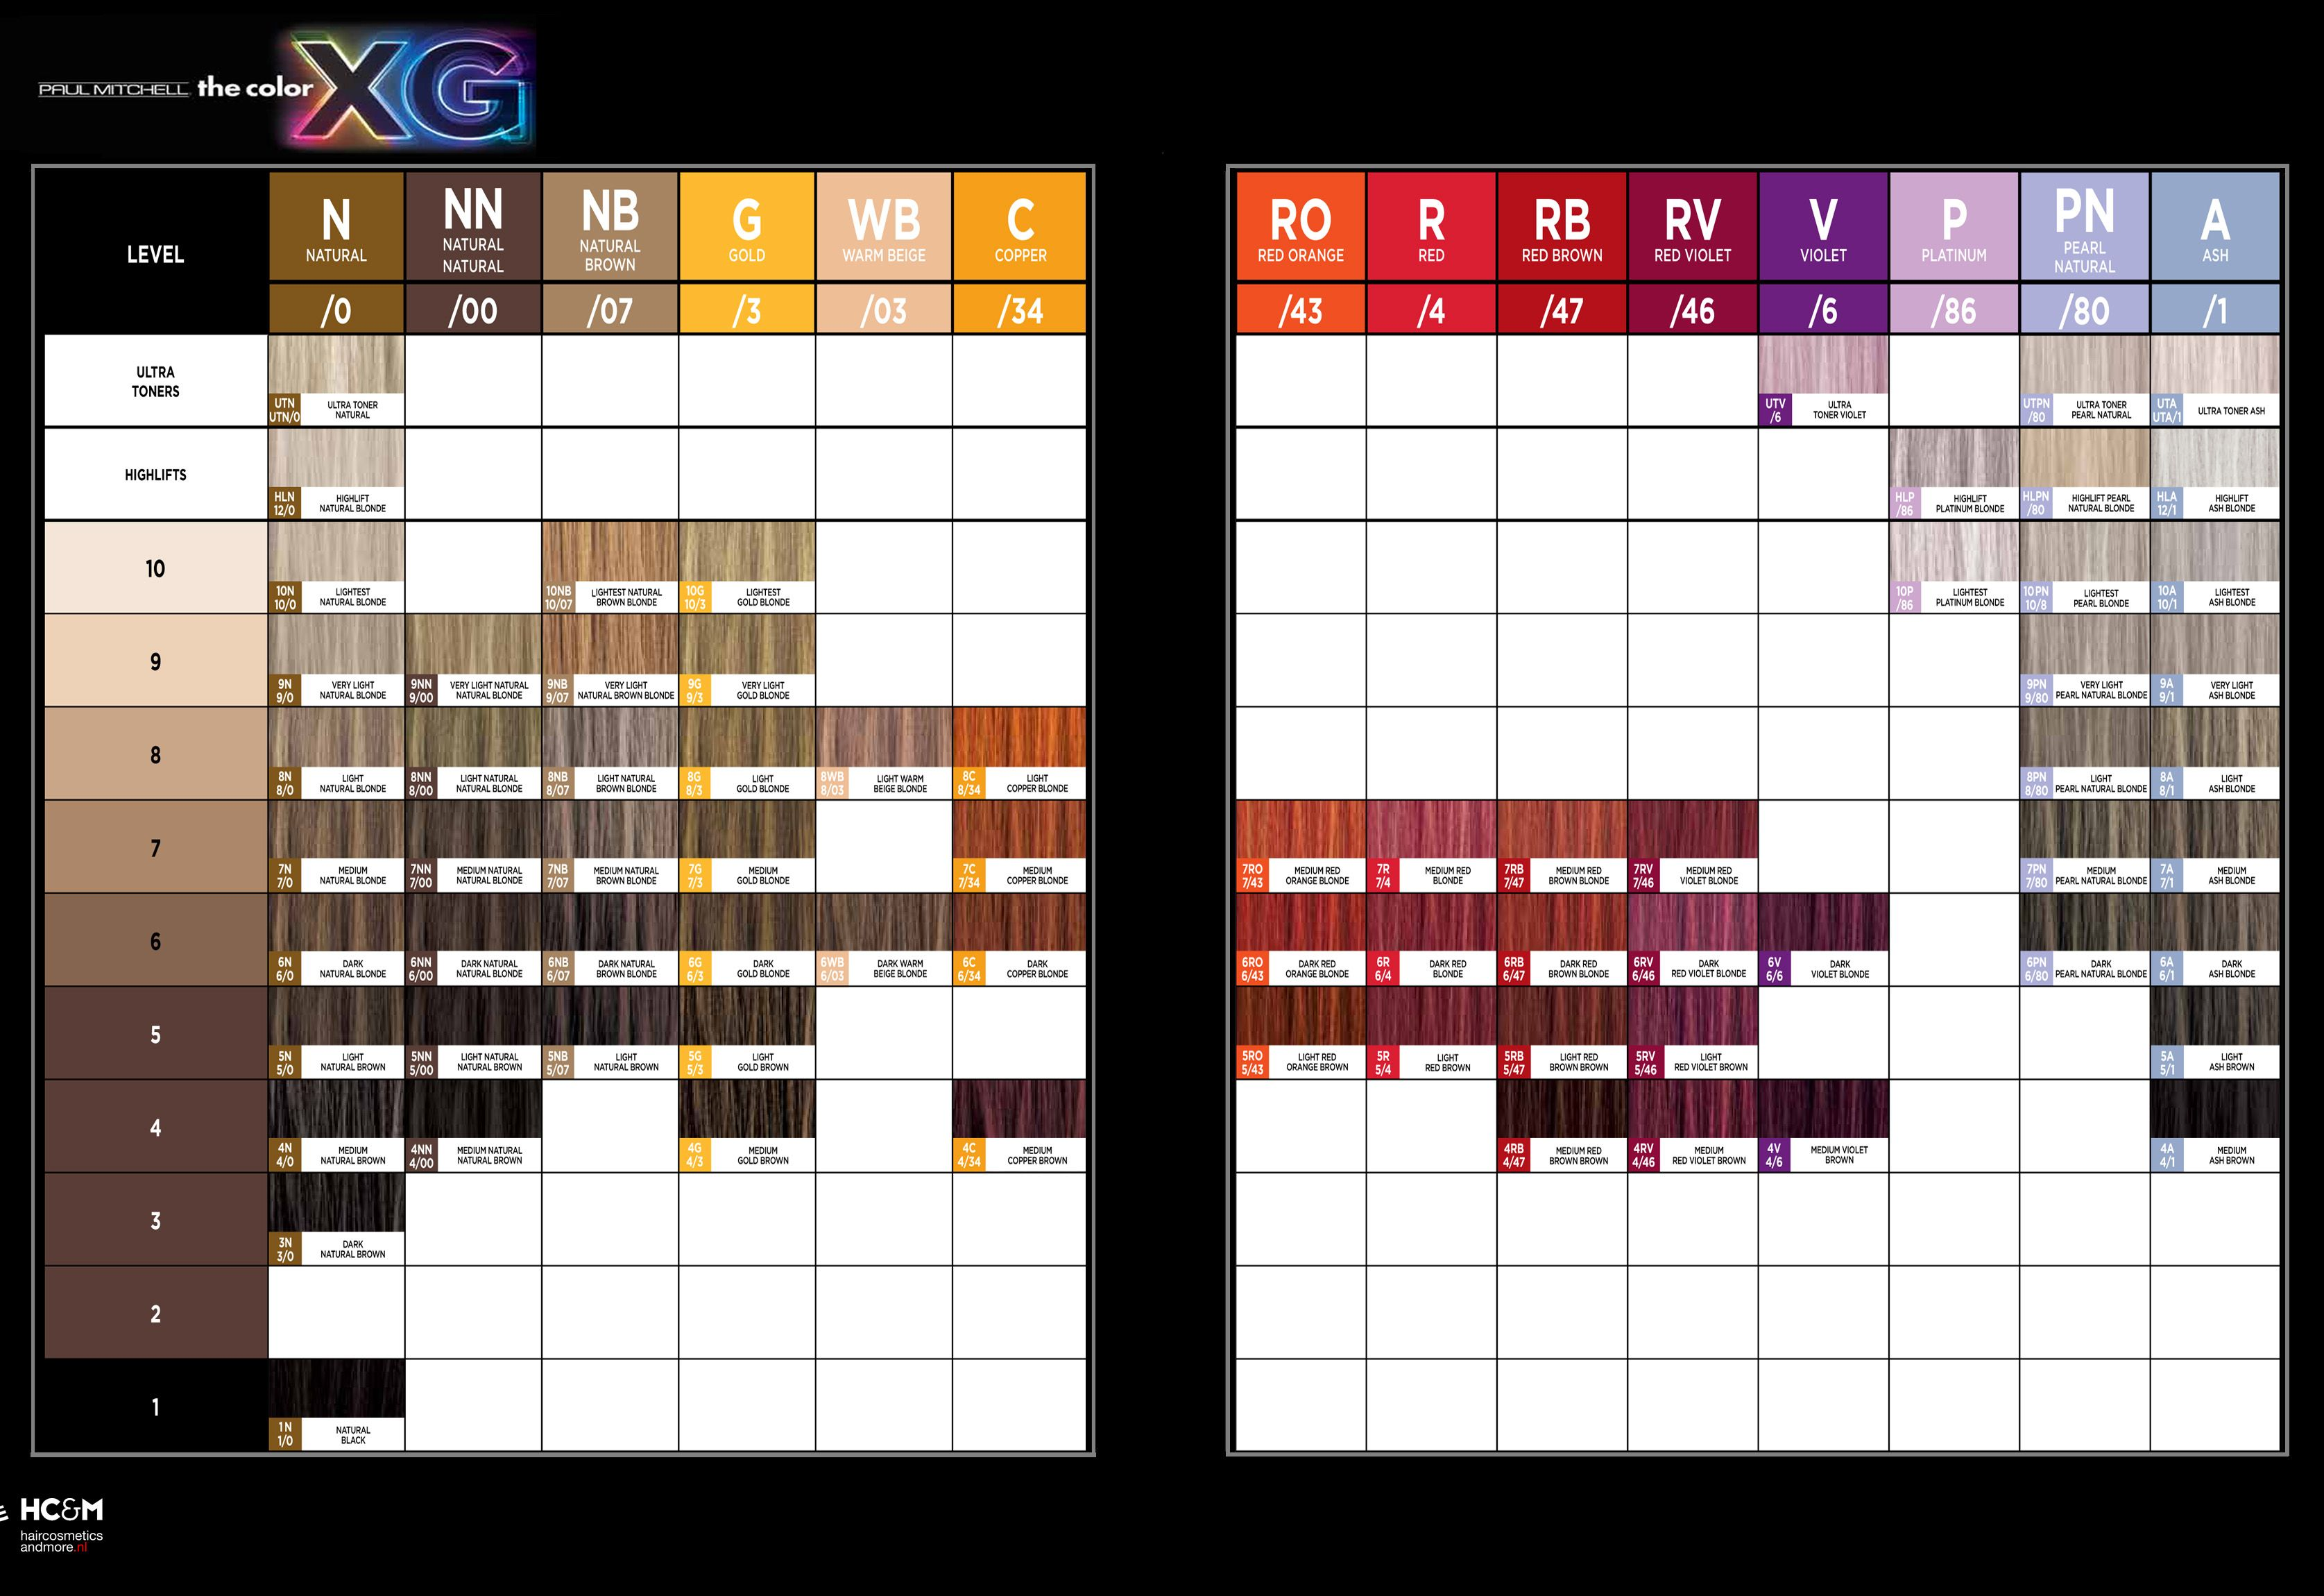 Paul Mitchell The Color Xg Color Chart